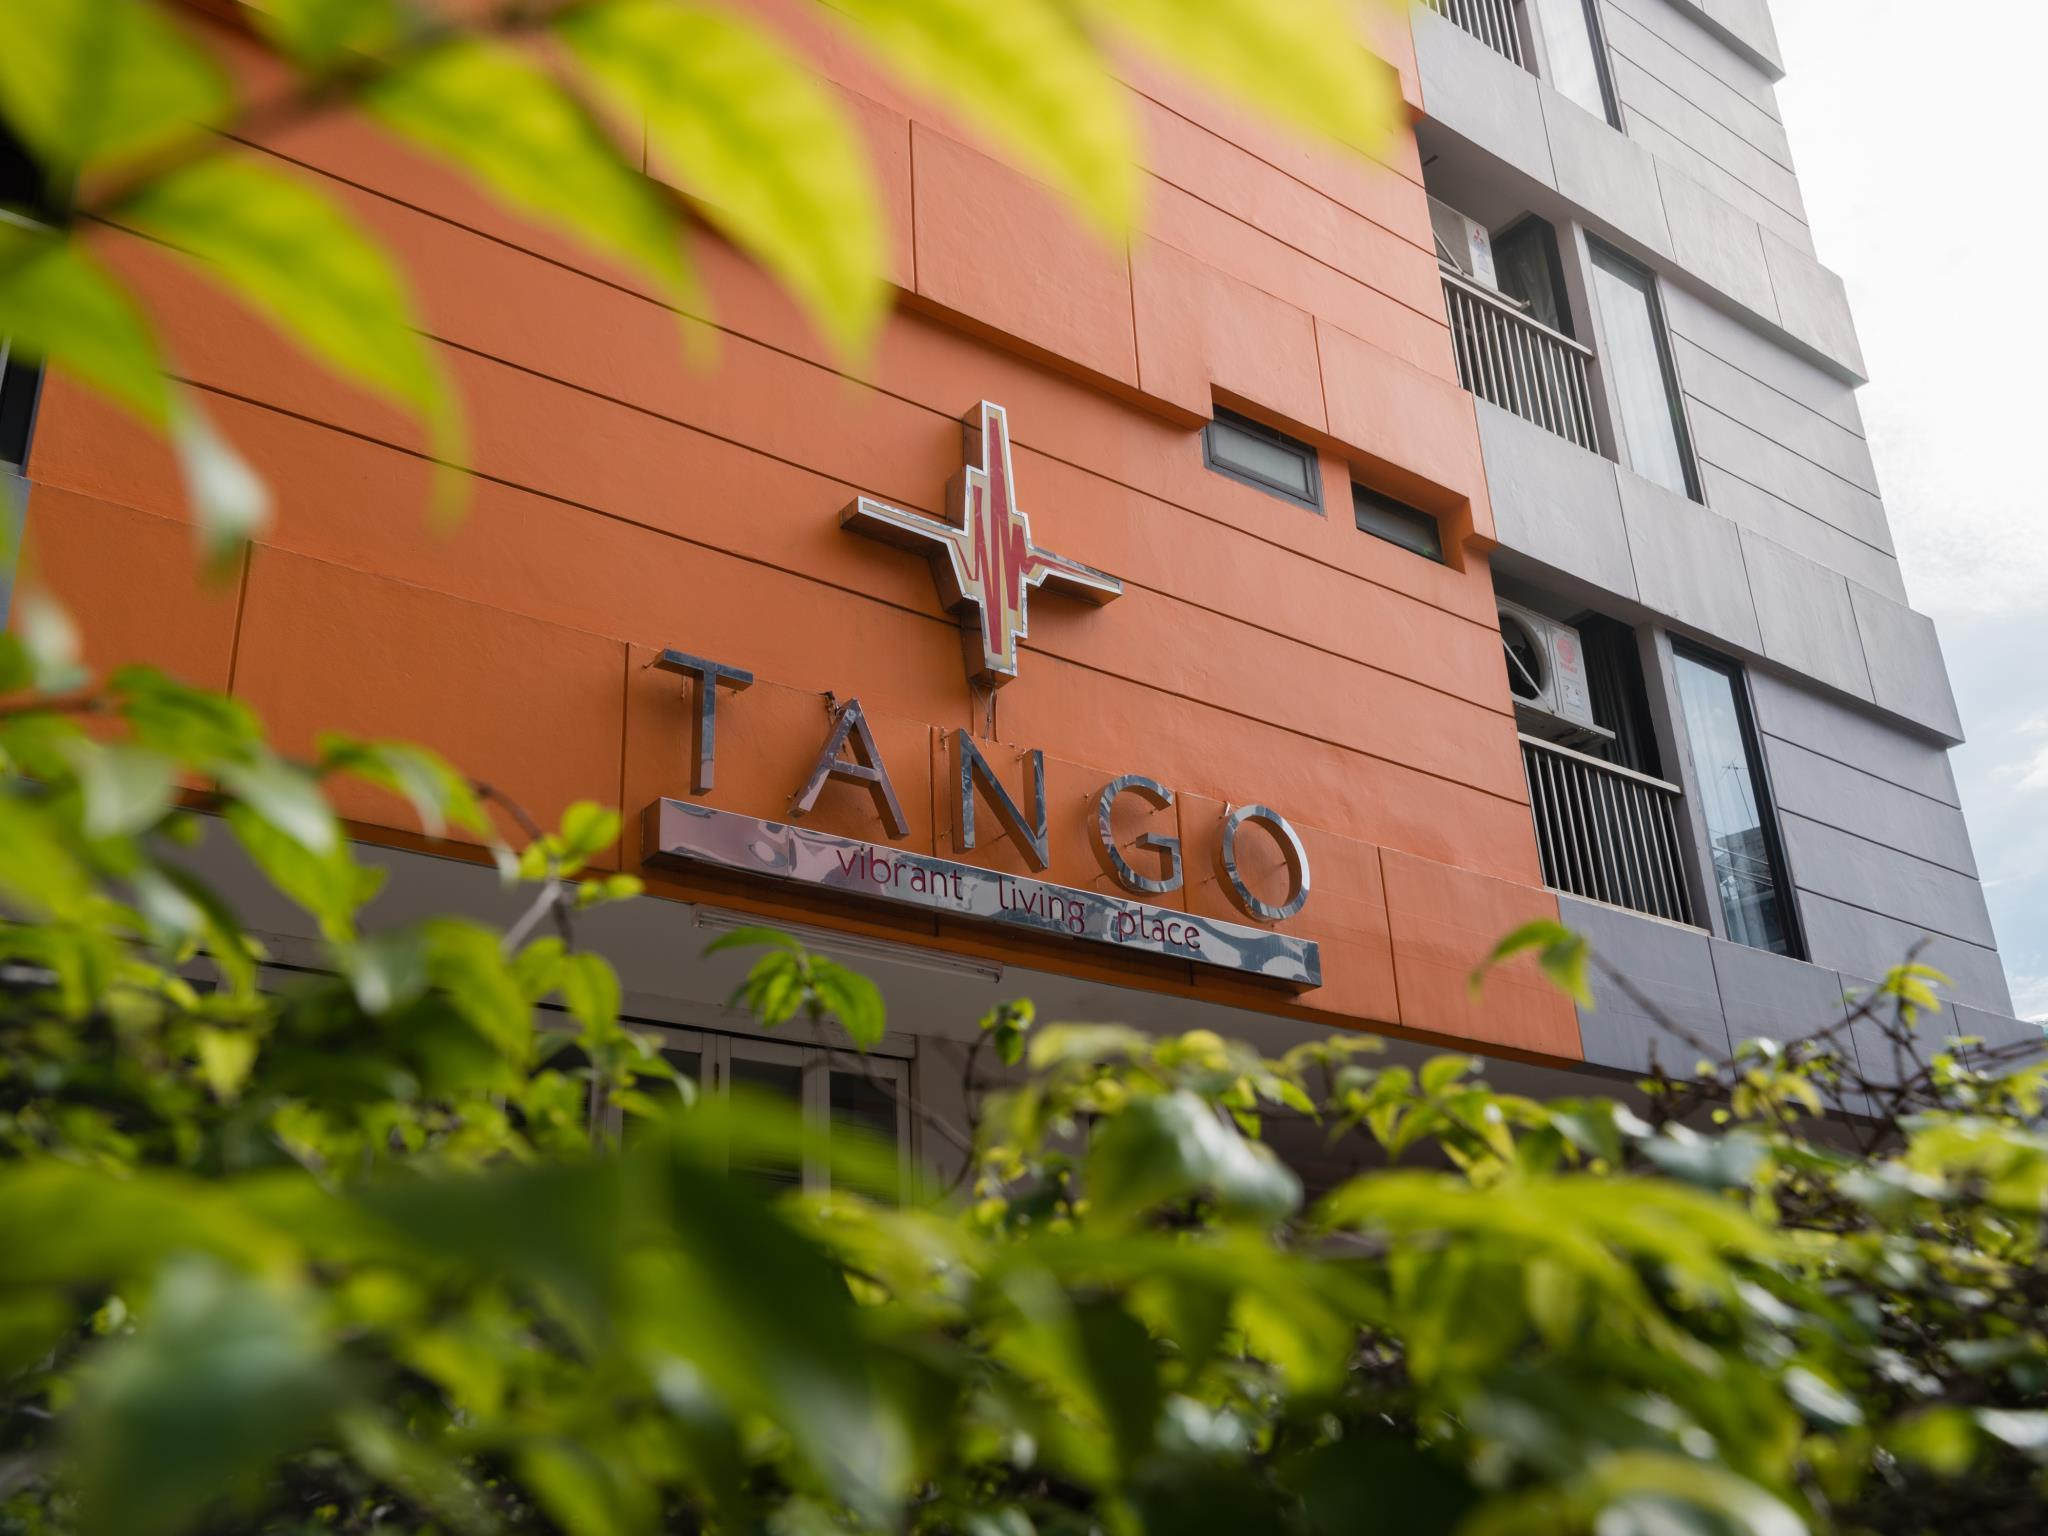 Beautiful Tango Vibrant Living Place Hotel In Bangkok   Room Deals, Photos ...